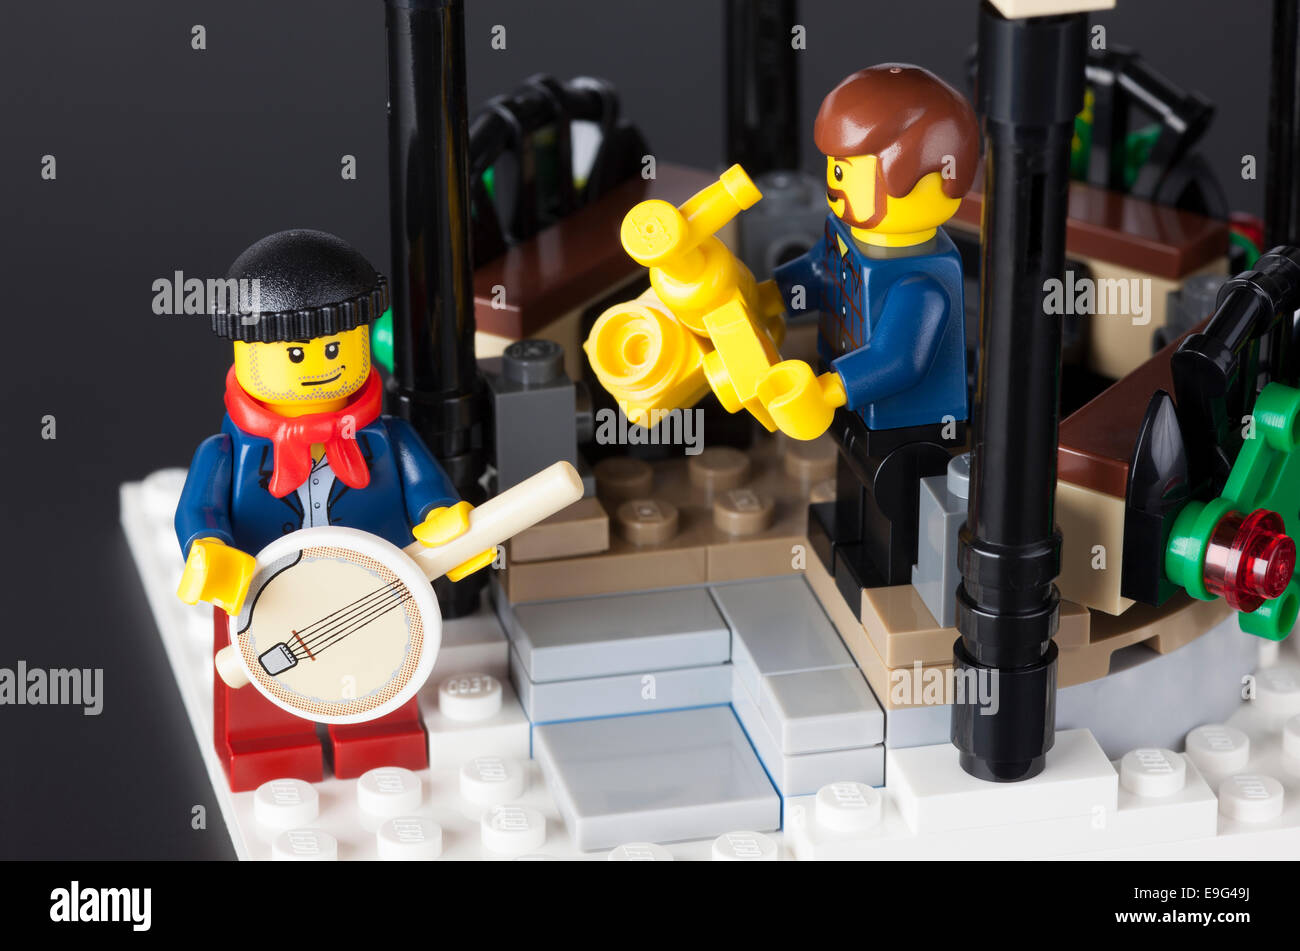 Tambov, Russian Federation - January 08, 2014 Two Lego musicians in pavilion on black background. Studio shot. Stock Photo